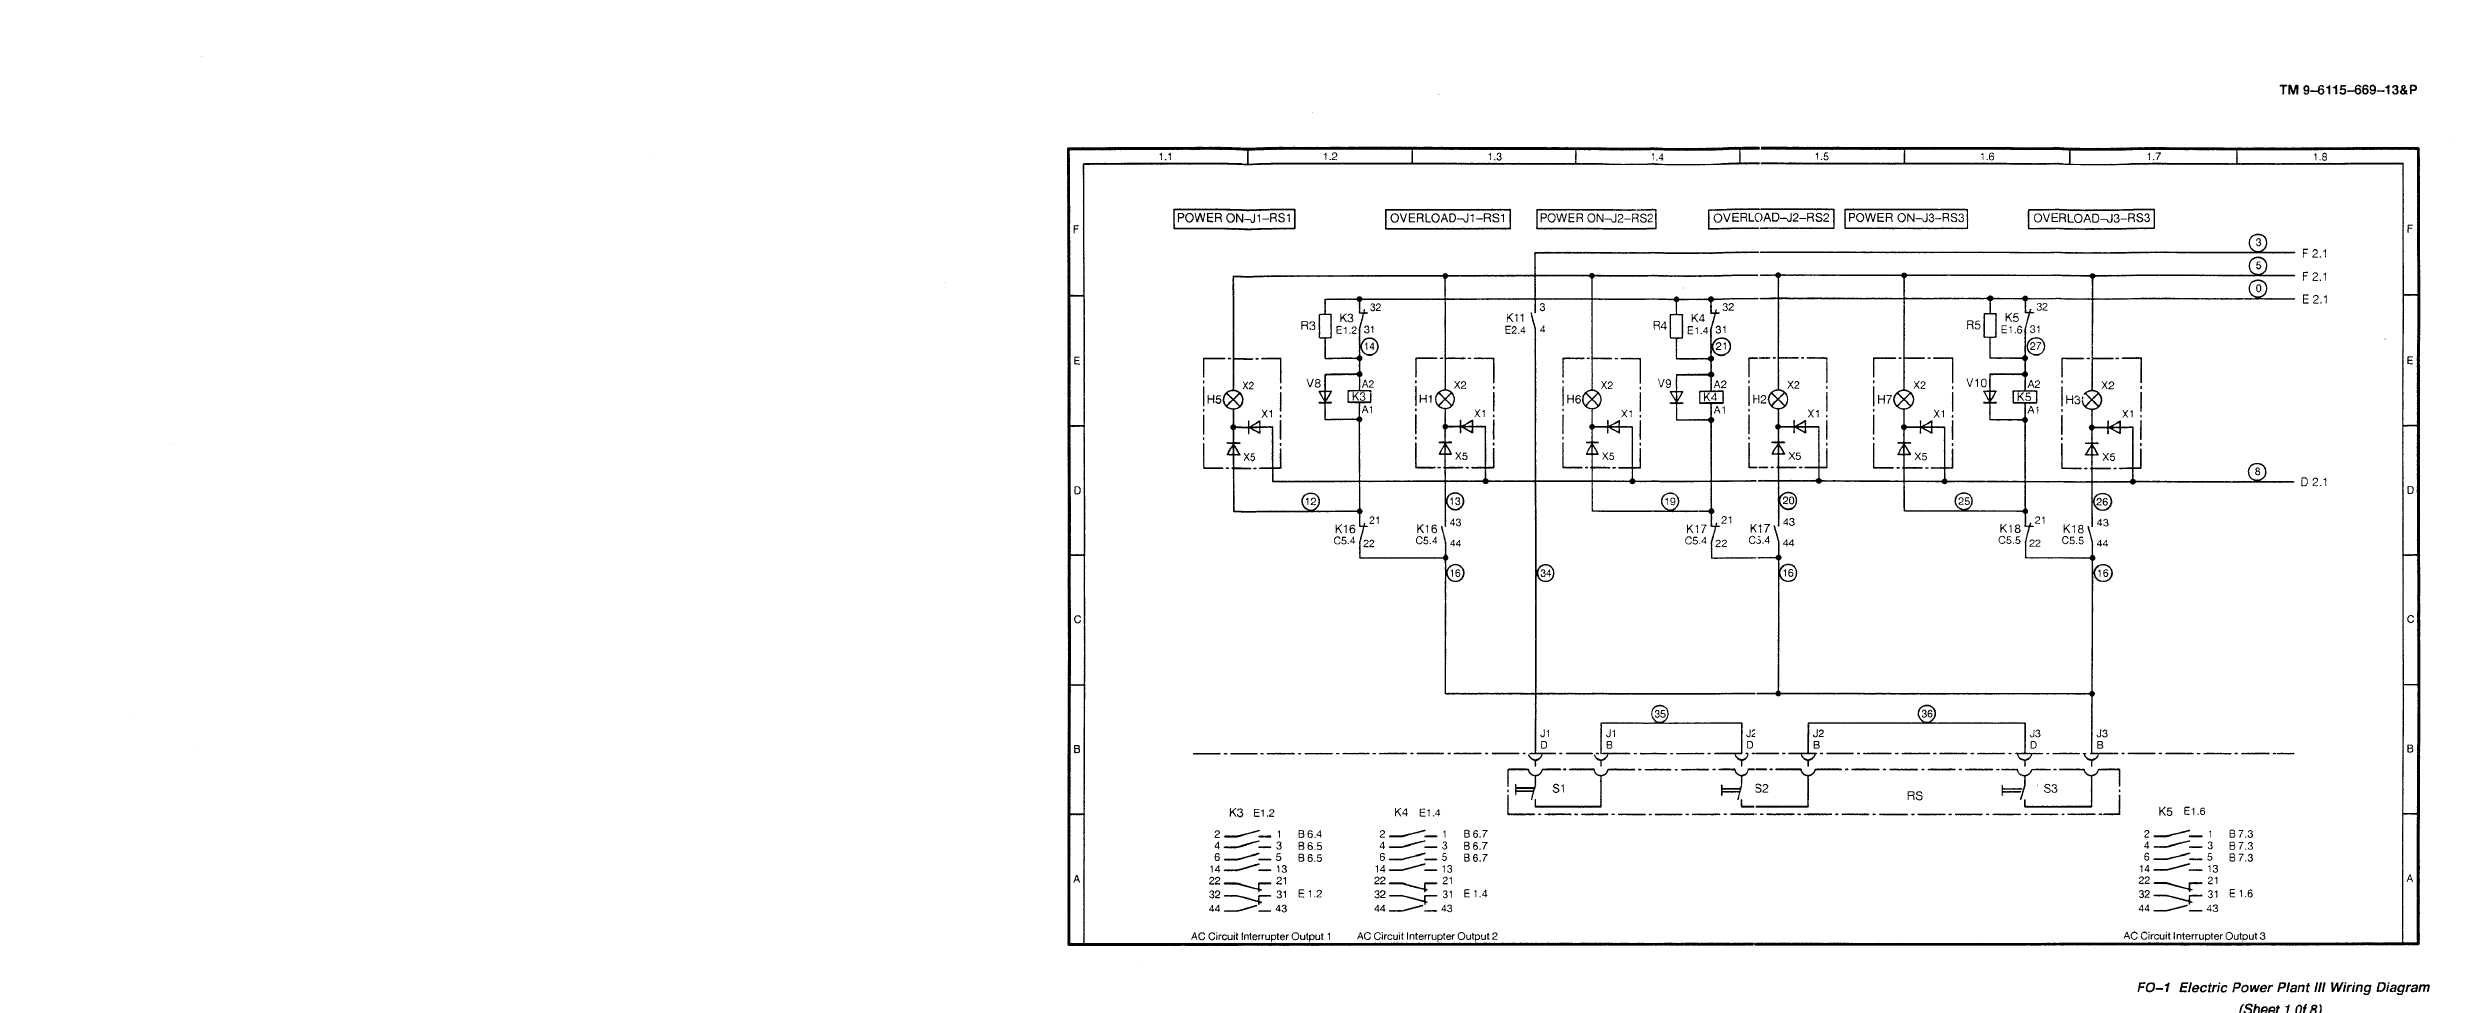 Fo 1 Electric Power Plant Iii Wiring Diagram Diesel Generator Tm 9 6115 669 13p Set Engine Driven Skid Mounted 150 Kw 400 Hz Alternating Current Manual Page Navigation